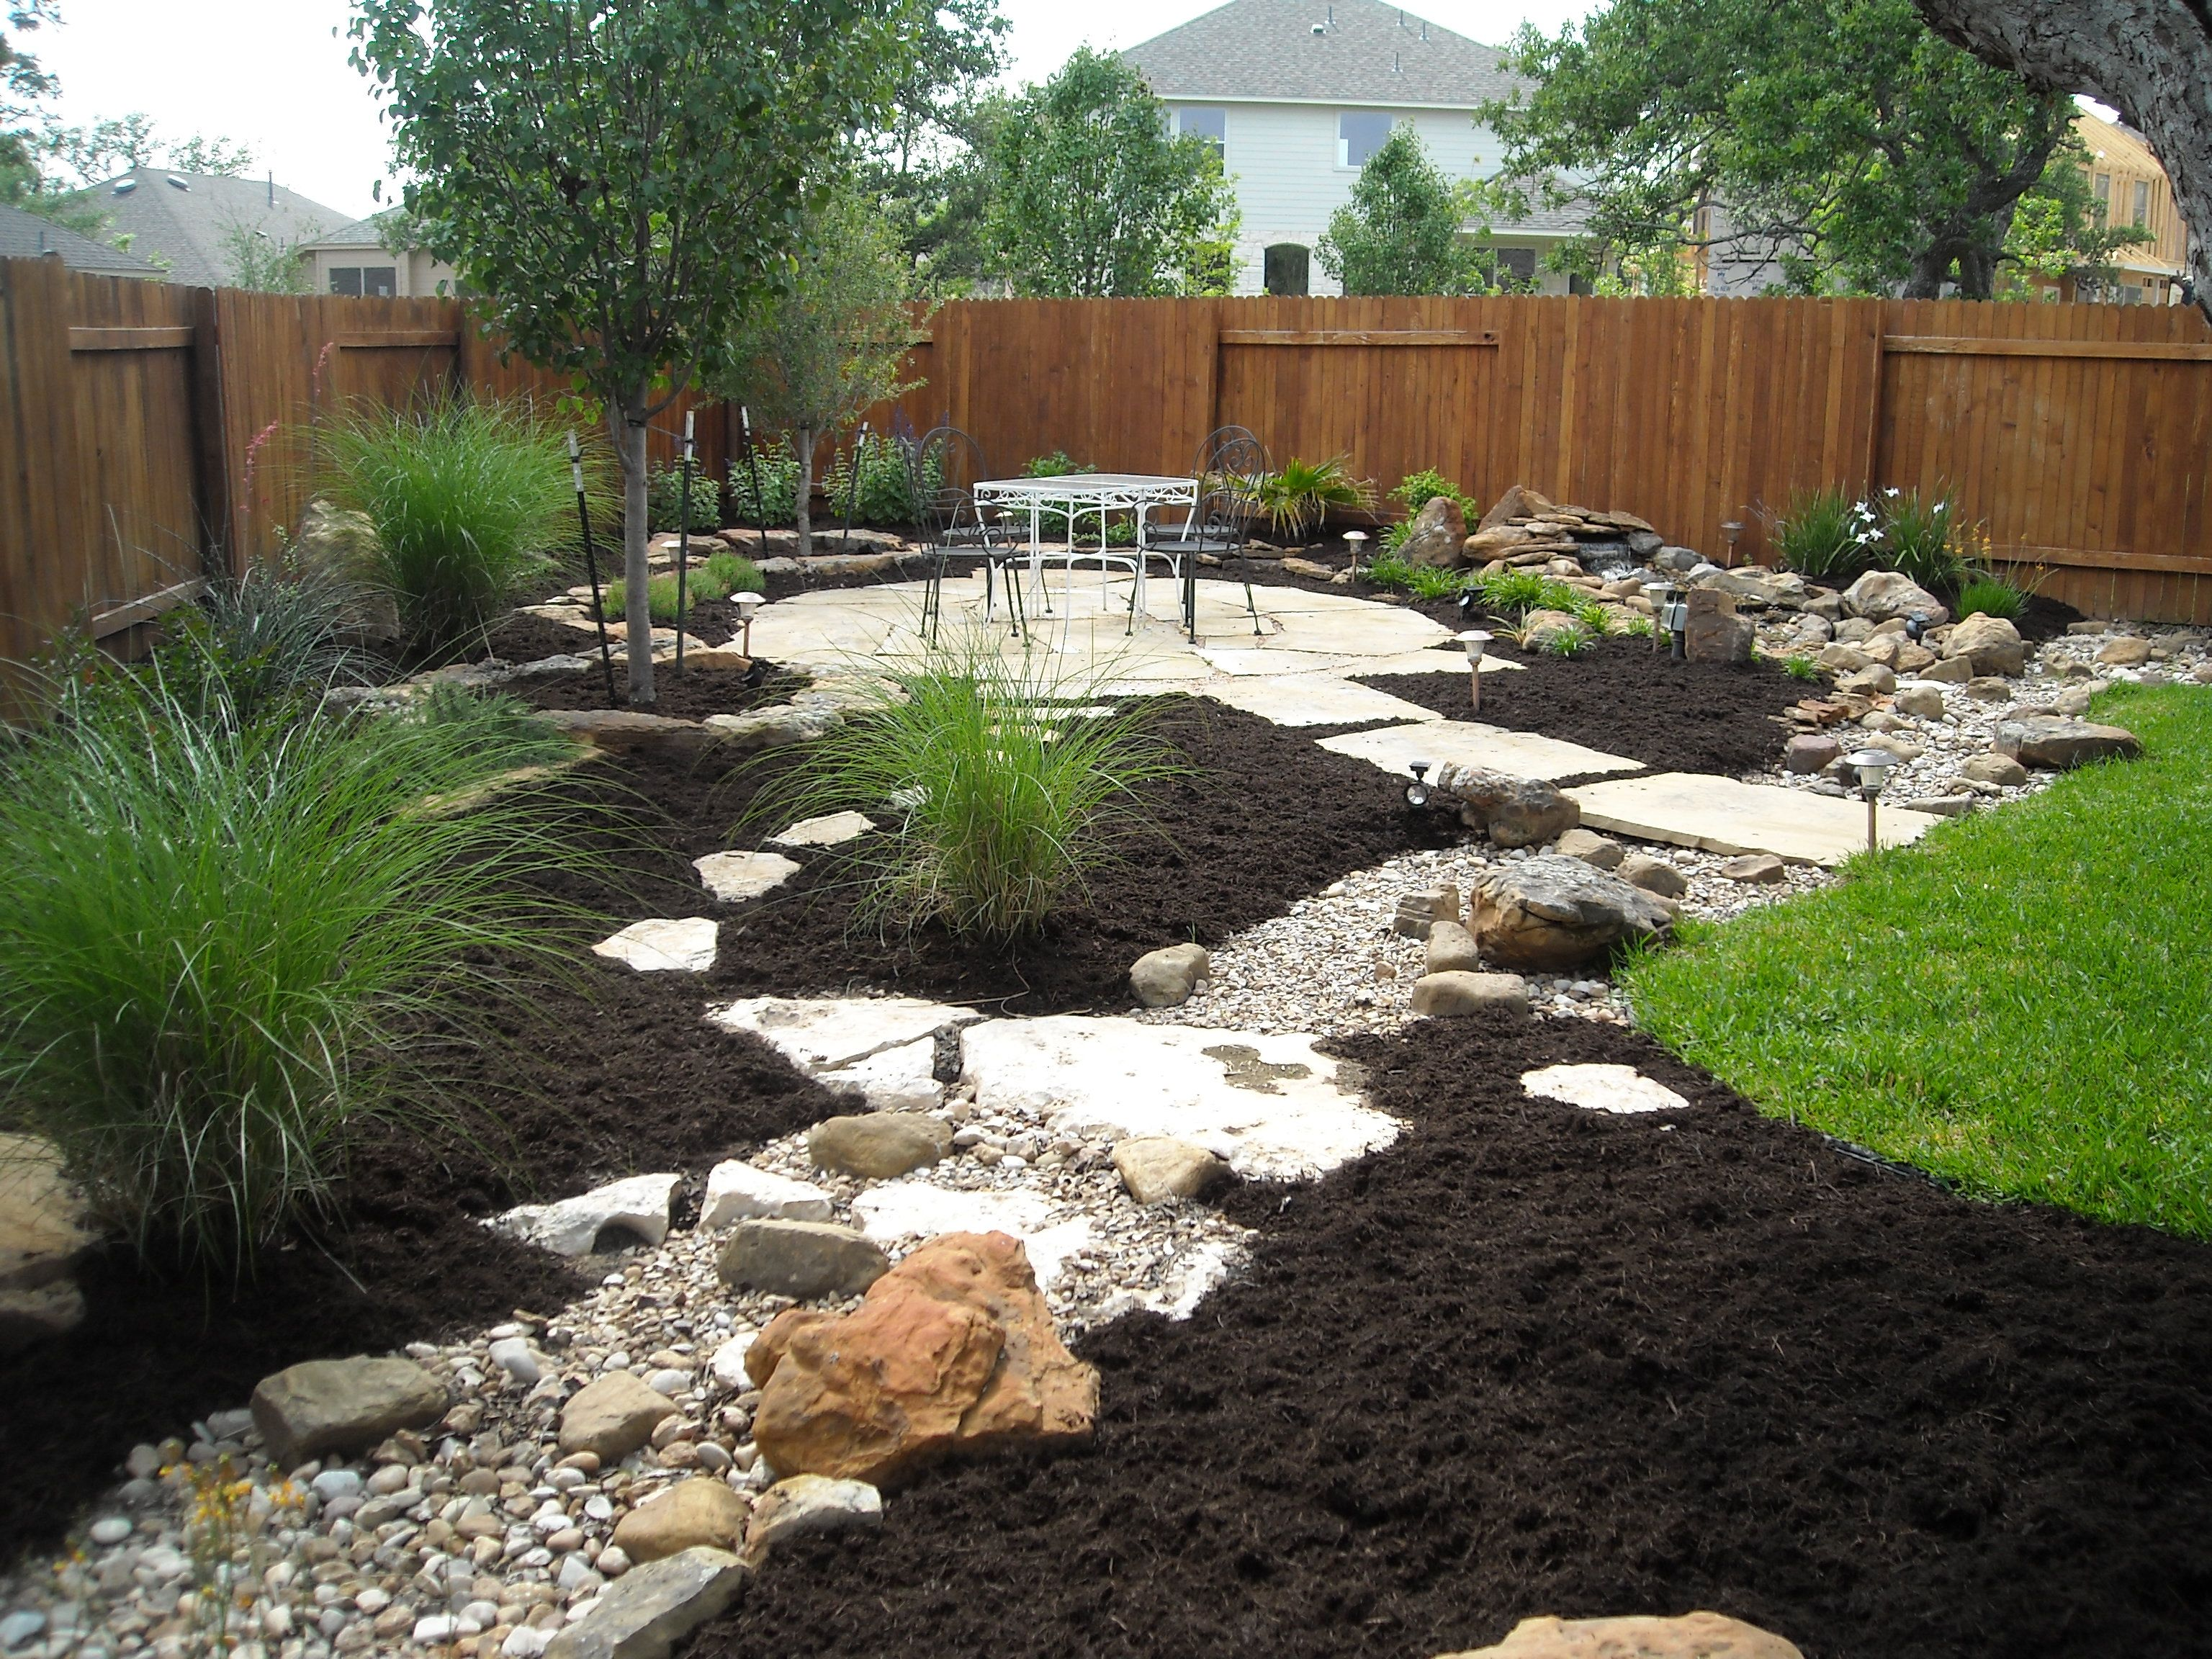 Landscape Design Garden Set Water Feature Disappearing Into A Dry Creek Bed With A Large .